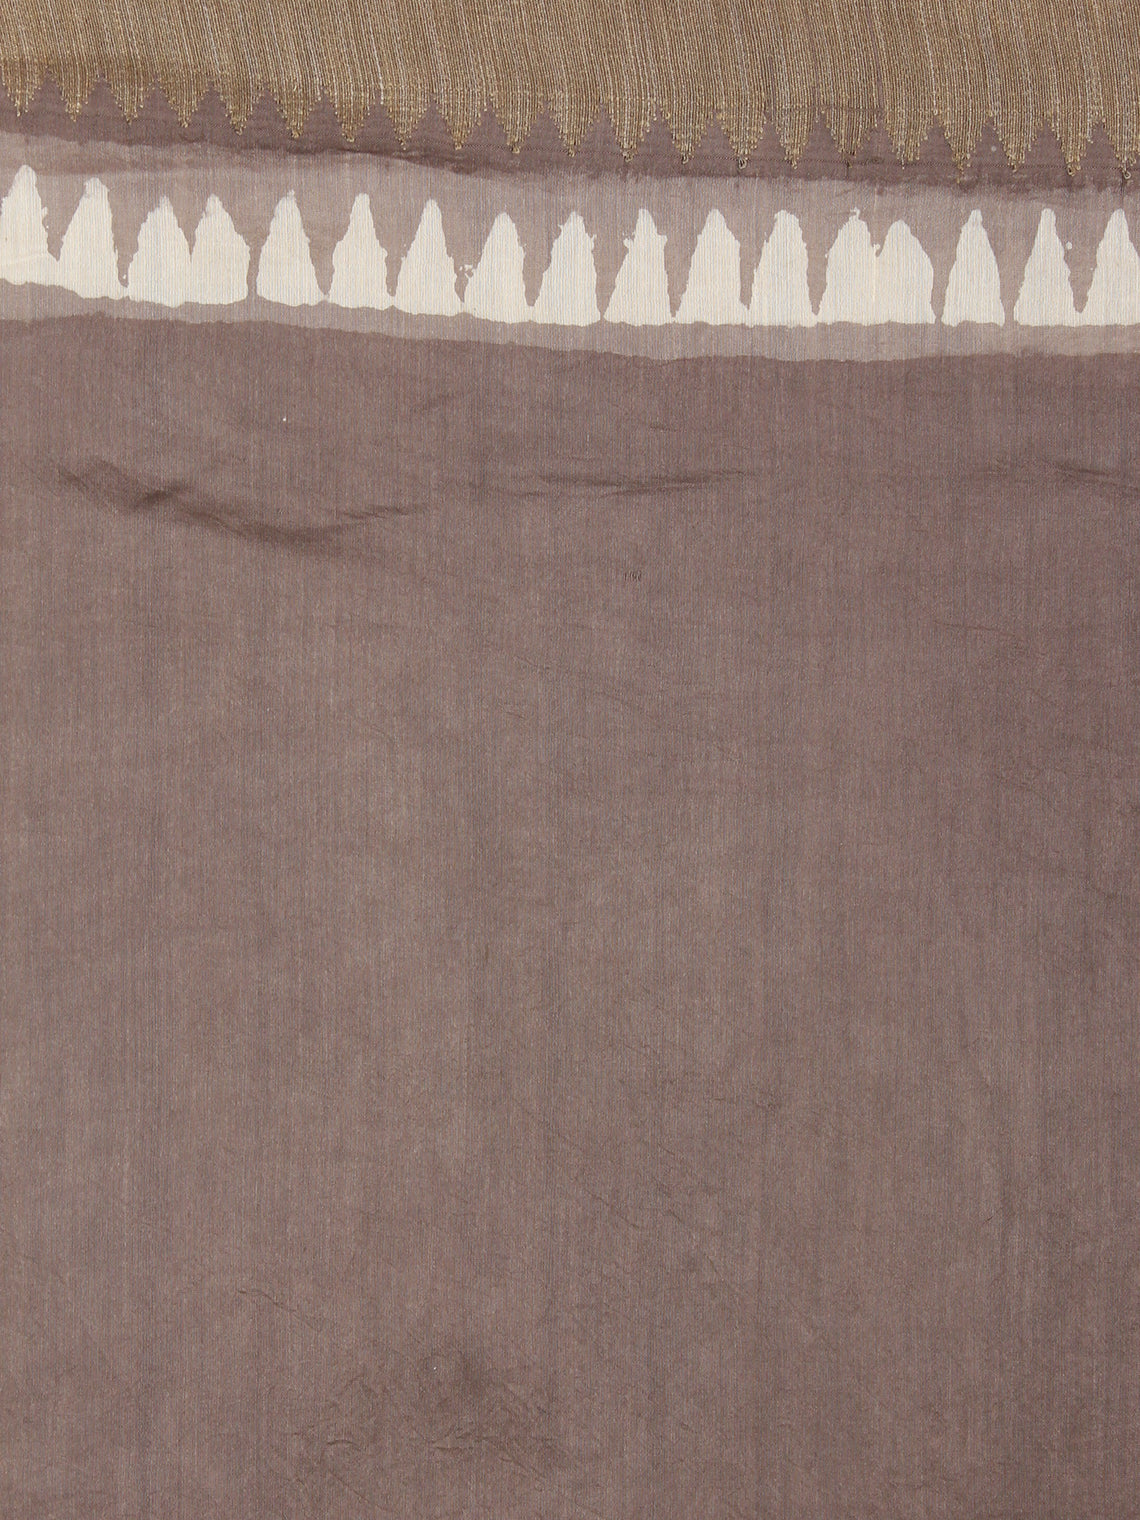 Brown White Hand Block Printed in Natural Colors Chanderi Saree With Geecha Border - S03170975